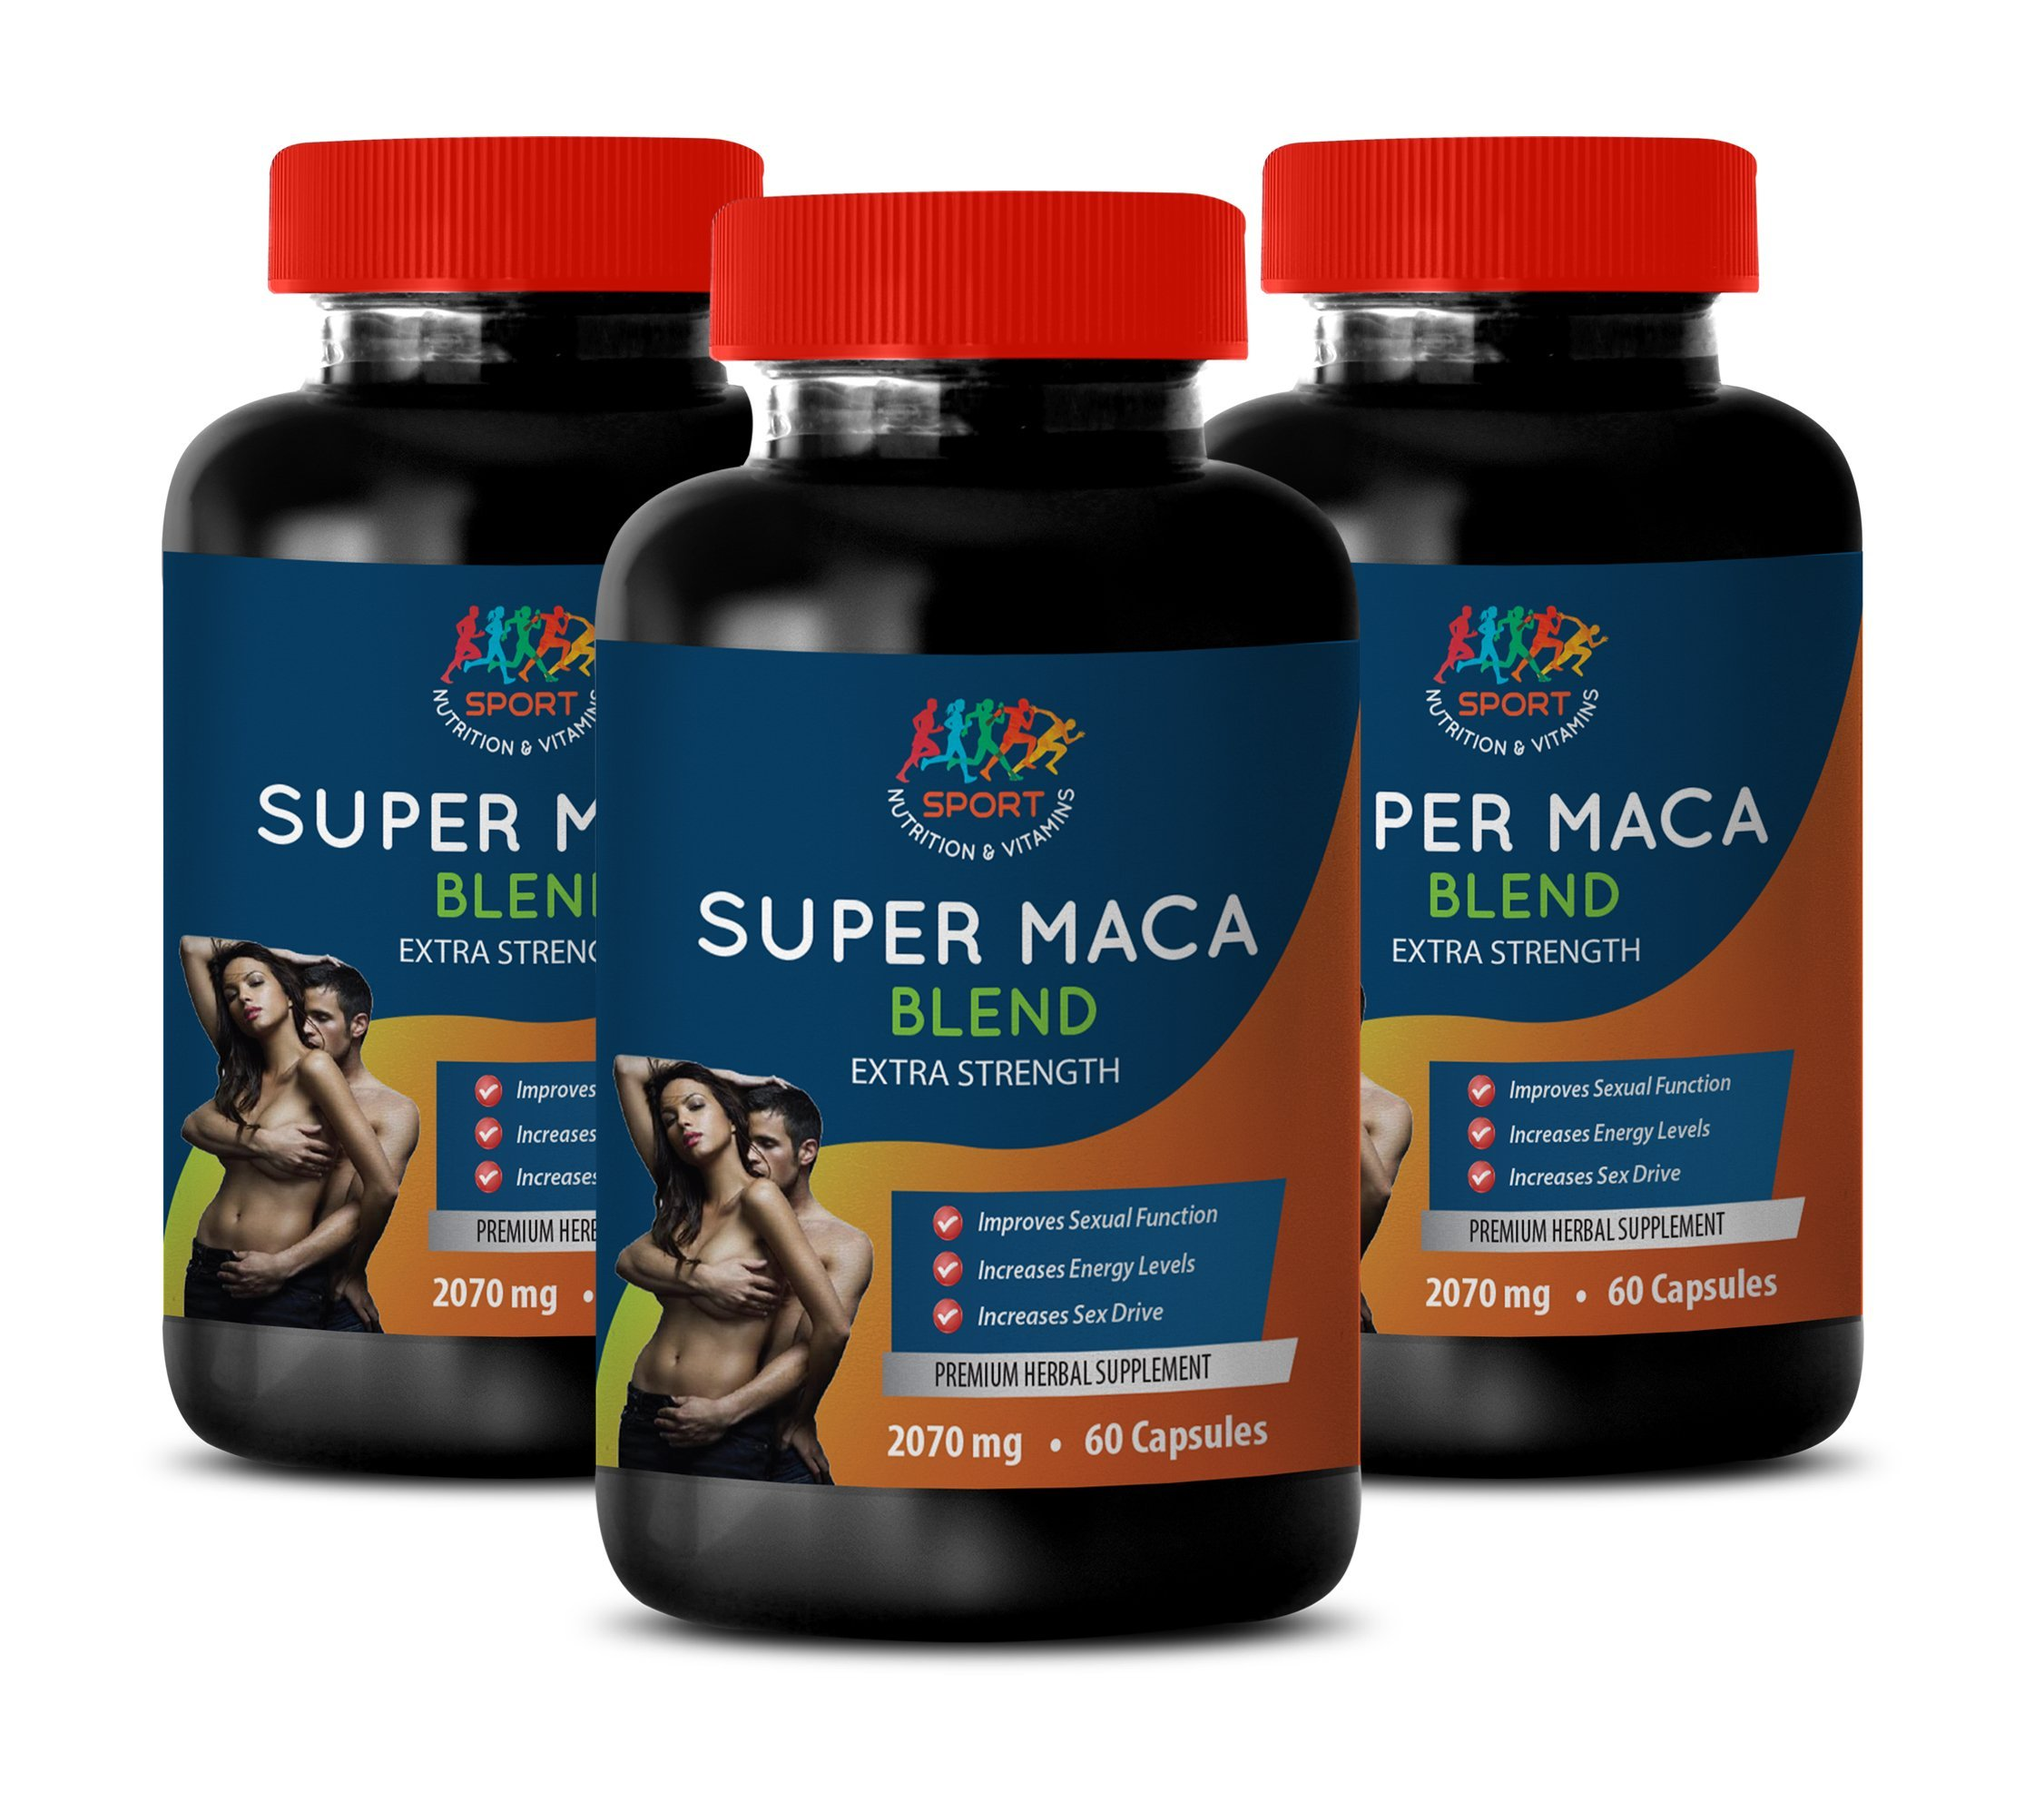 Men Sexual Stamina Supplement - Super MACA Blend 2070 MG - Extra Strength - yohimbe Supplement for Men - 3 Bottles 180 Capsules by Sport Nutrition & Vitamins USA (Image #1)